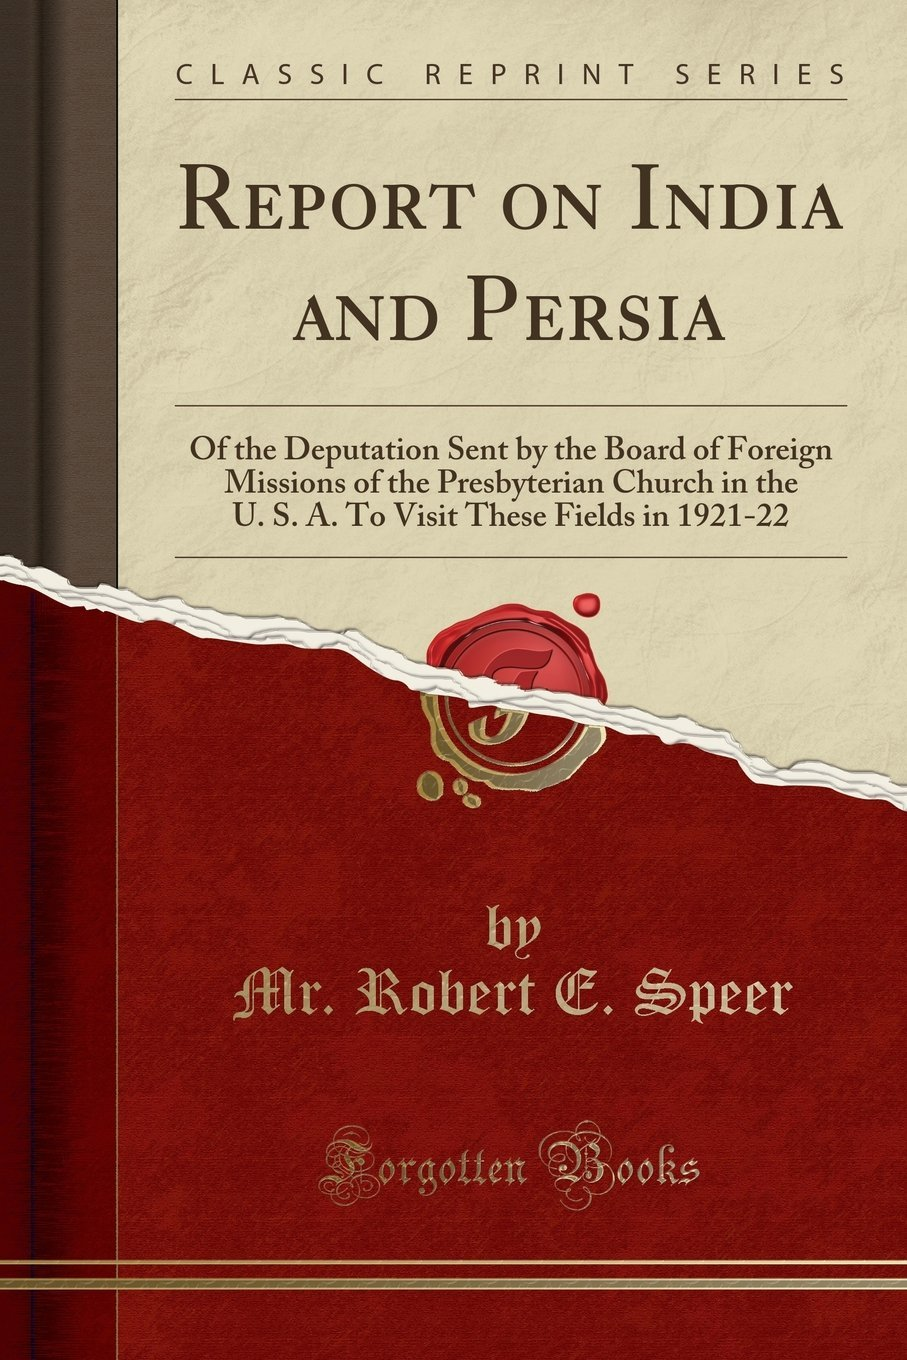 Download Report on India and Persia: Of the Deputation Sent by the Board of Foreign Missions of the Presbyterian Church in the U. S. A. To Visit These Fields in 1921-22 (Classic Reprint) ebook